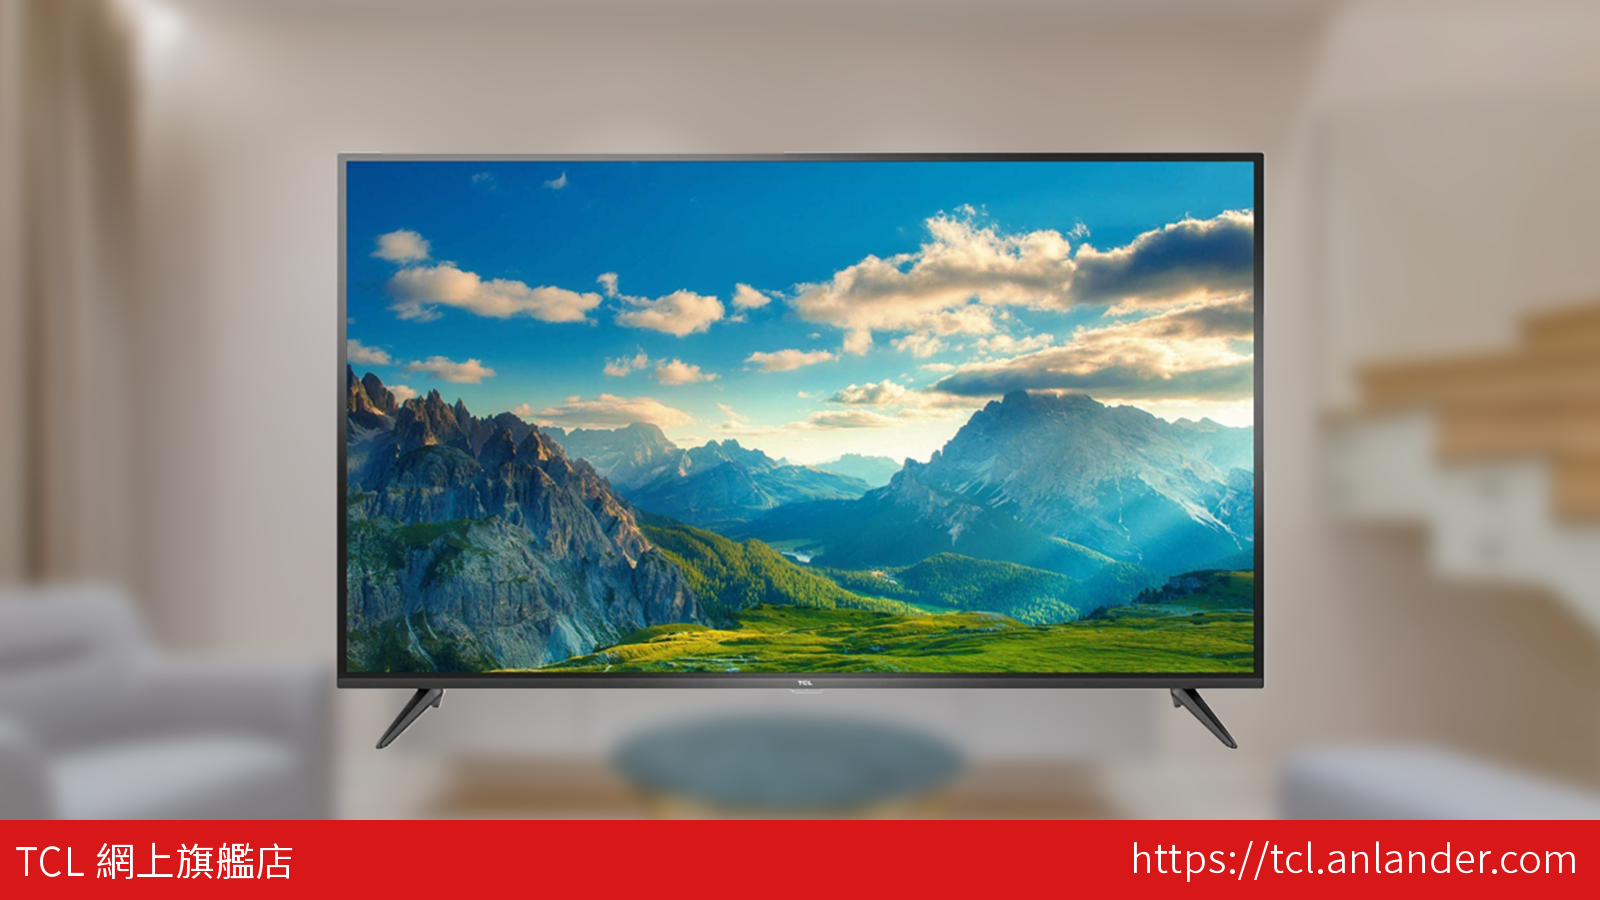 TCL P65 4K UHD 超高清 Android TV 智能電視 - 43吋 (P65US)